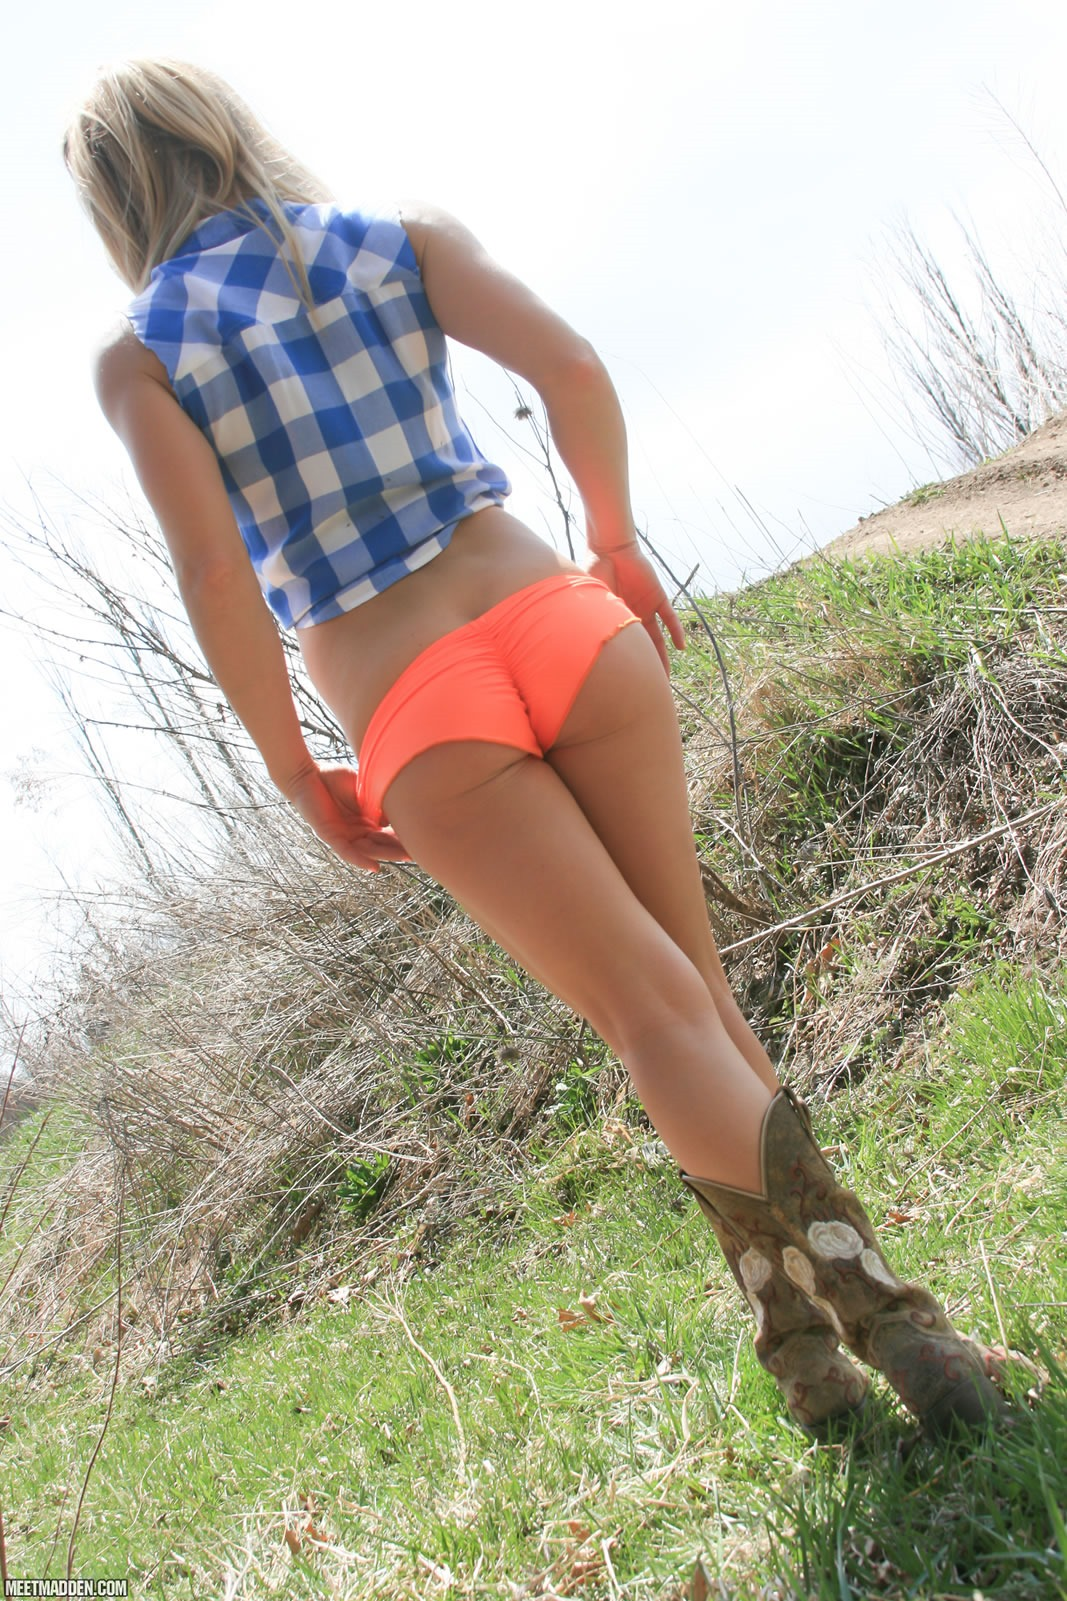 Country Tits - Fine Hotties - Hot Naked Girls, Celebrities ...